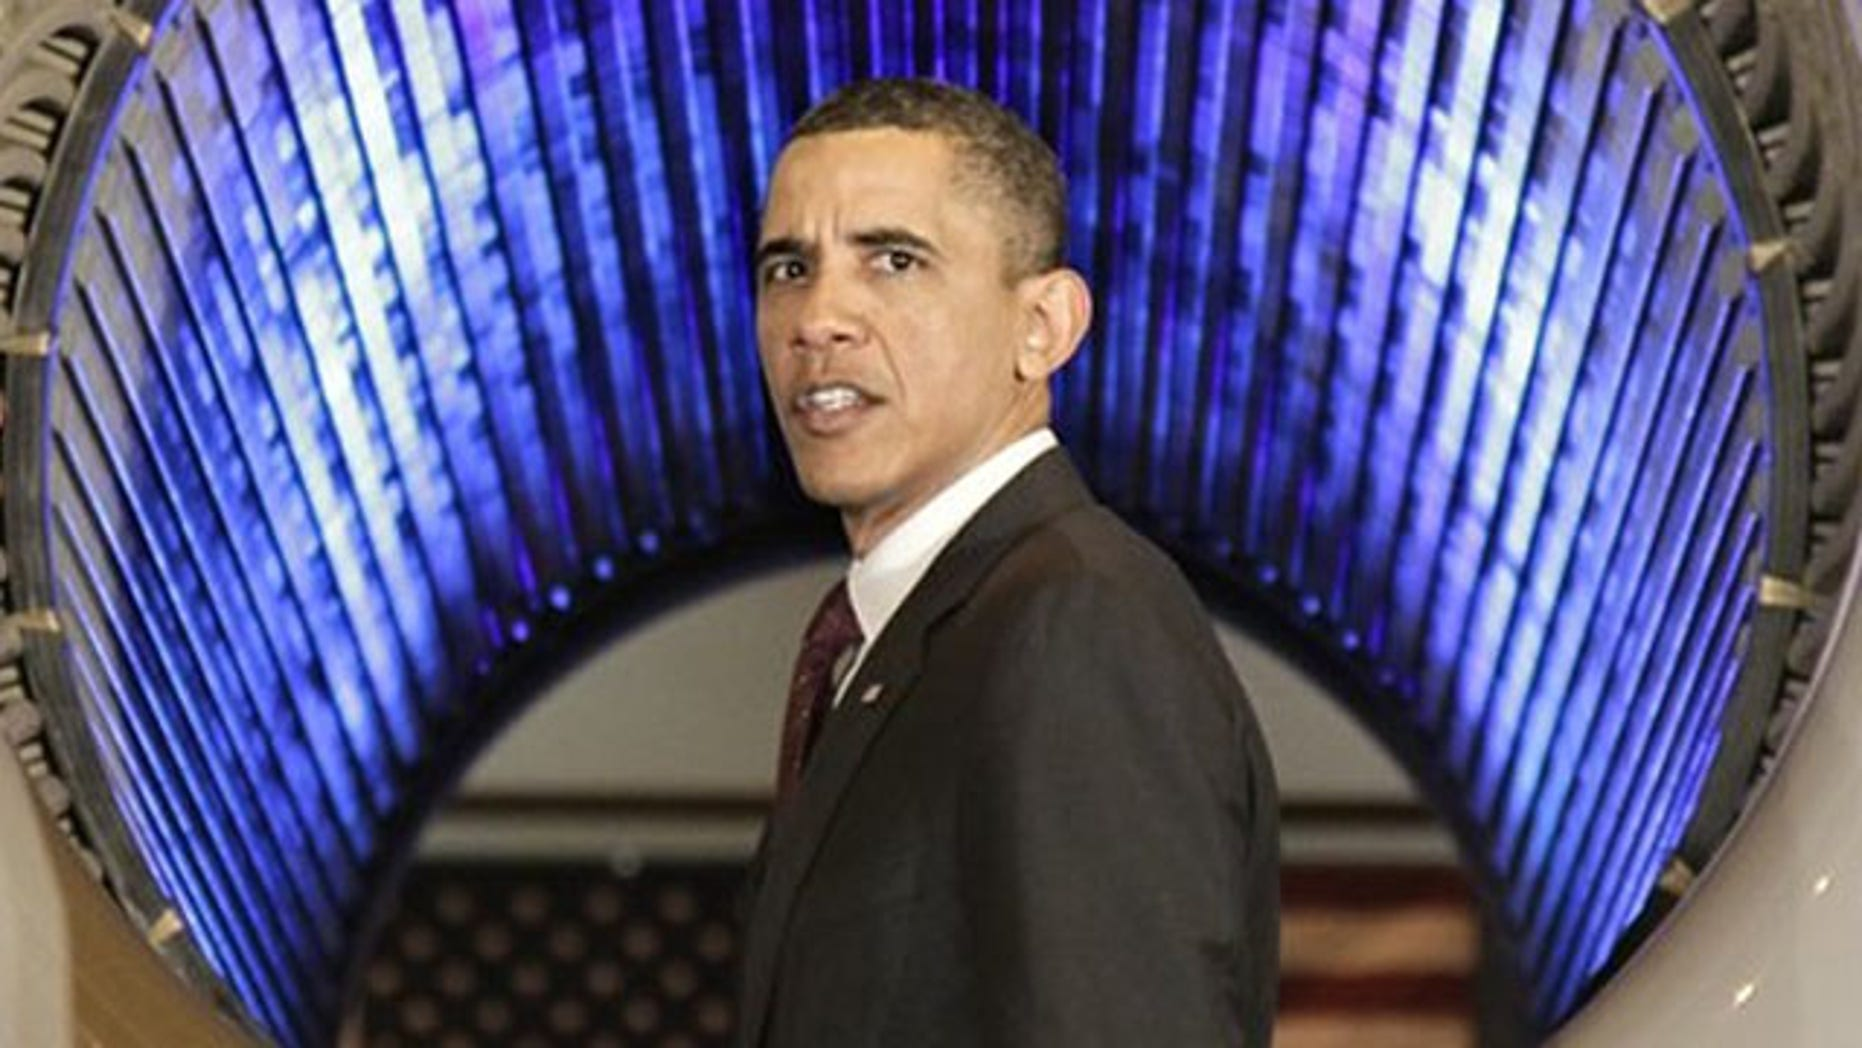 President Obama visits the birthplace of General Electric Jan. 21 in Schenectady, N.Y.